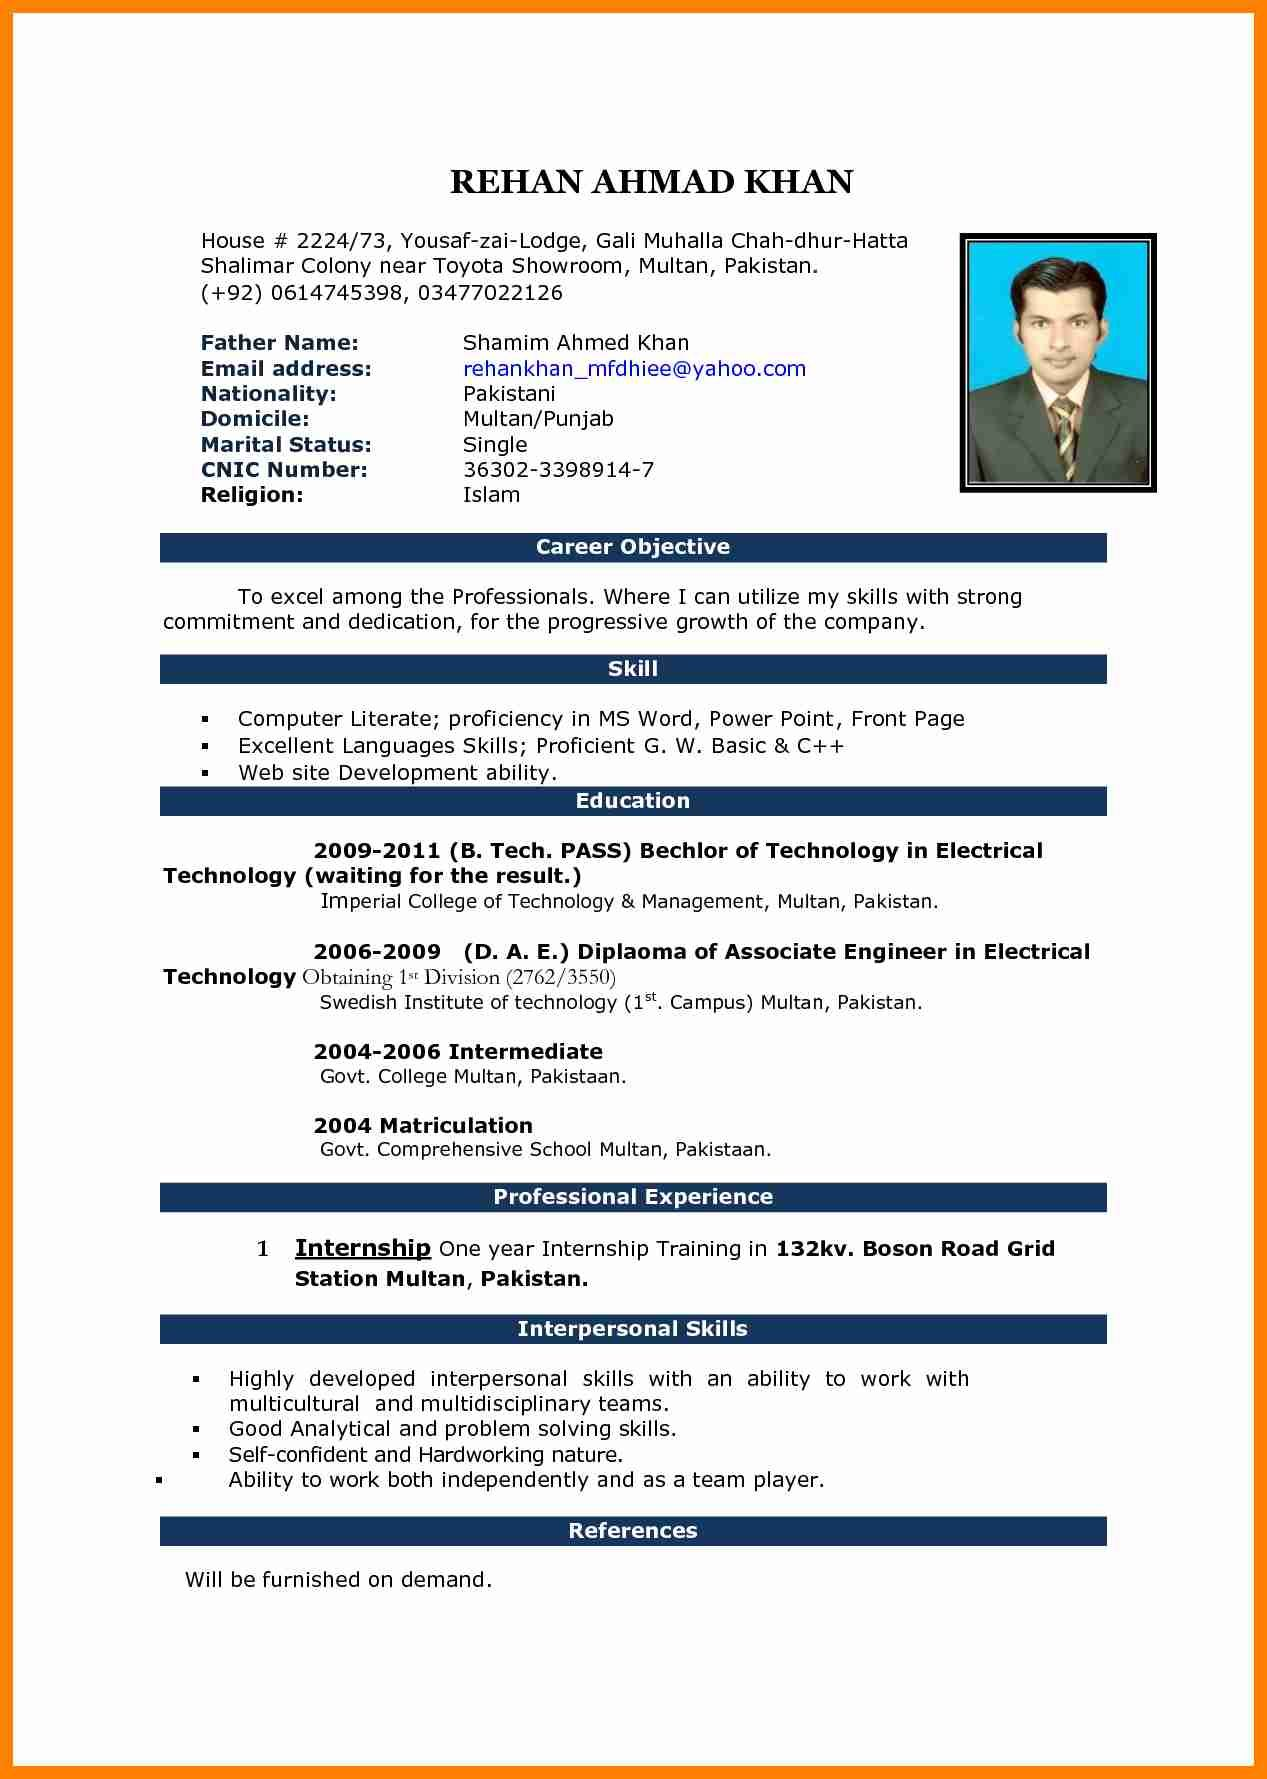 resume format for back office executive admin assistant microsoft templ free cv front Resume Front Office Executive Resume Download